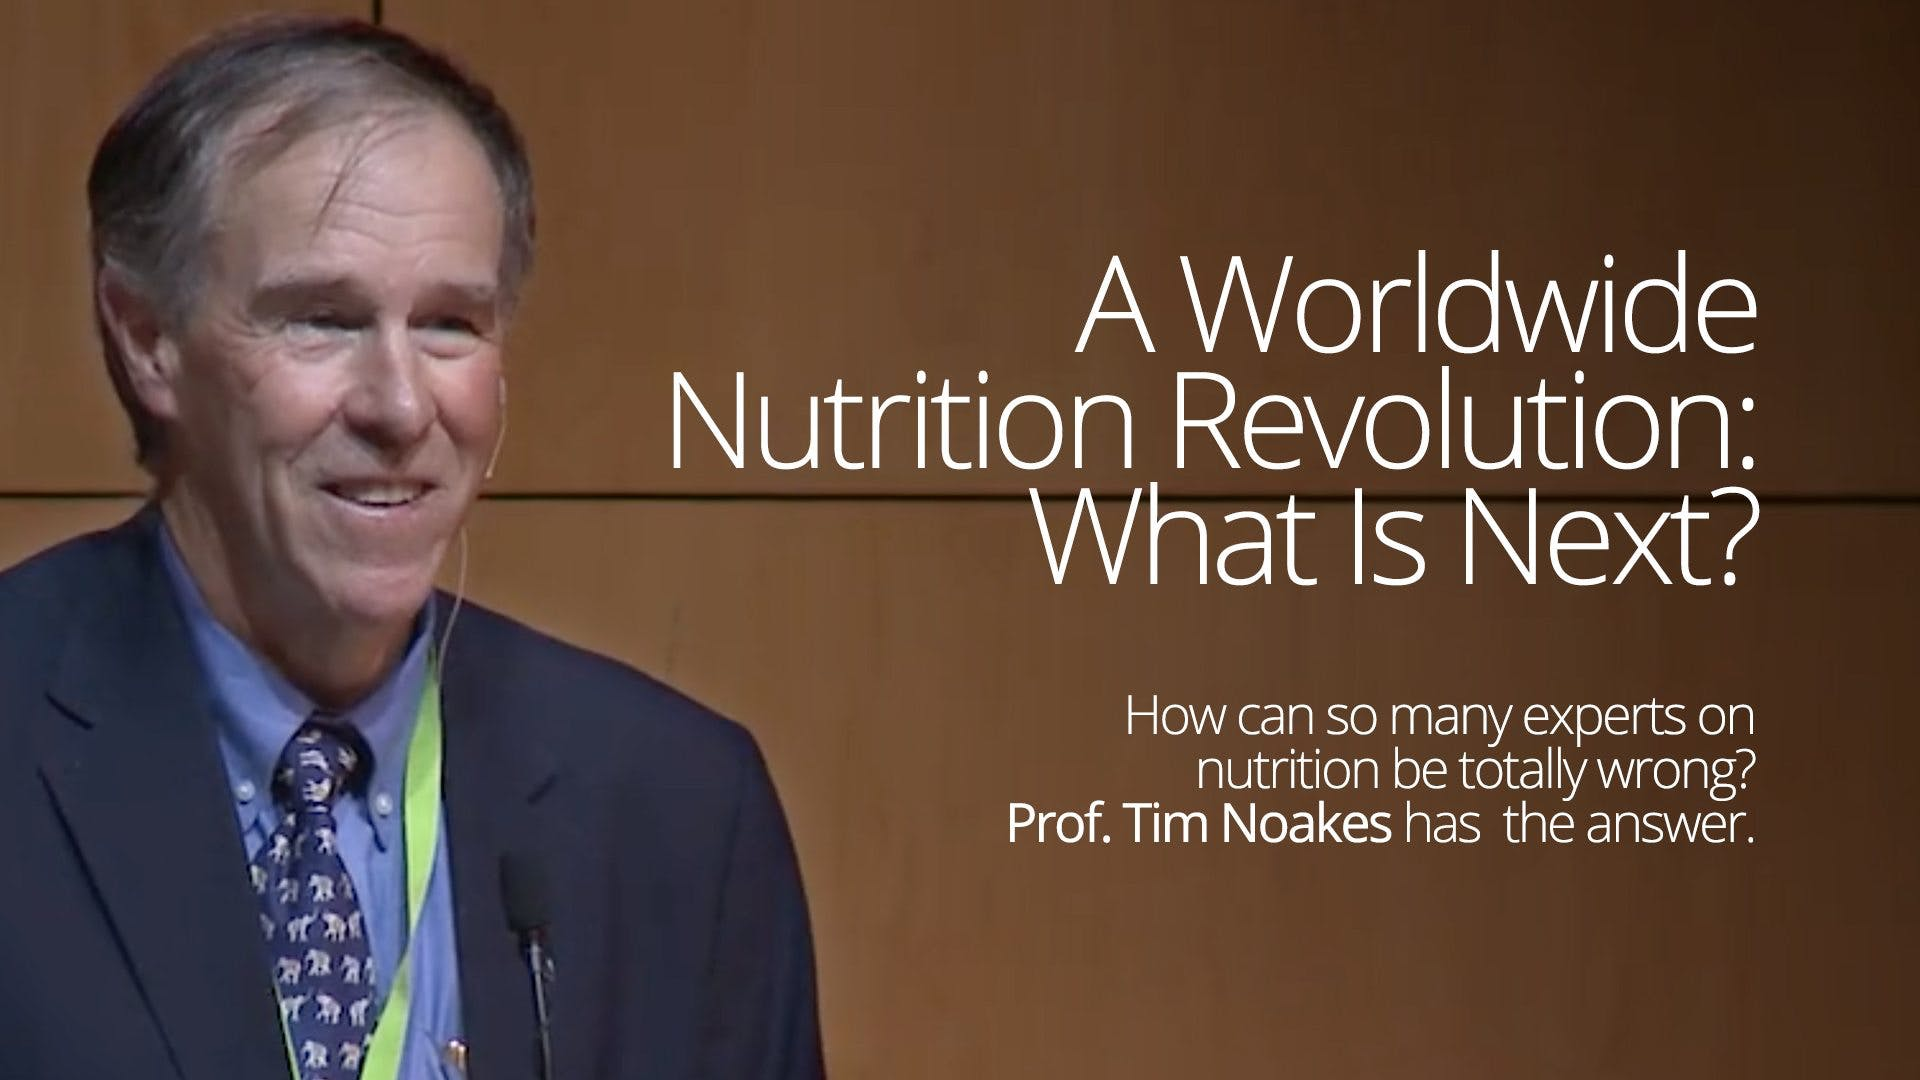 A world-wide nutrition revolution: what is next?